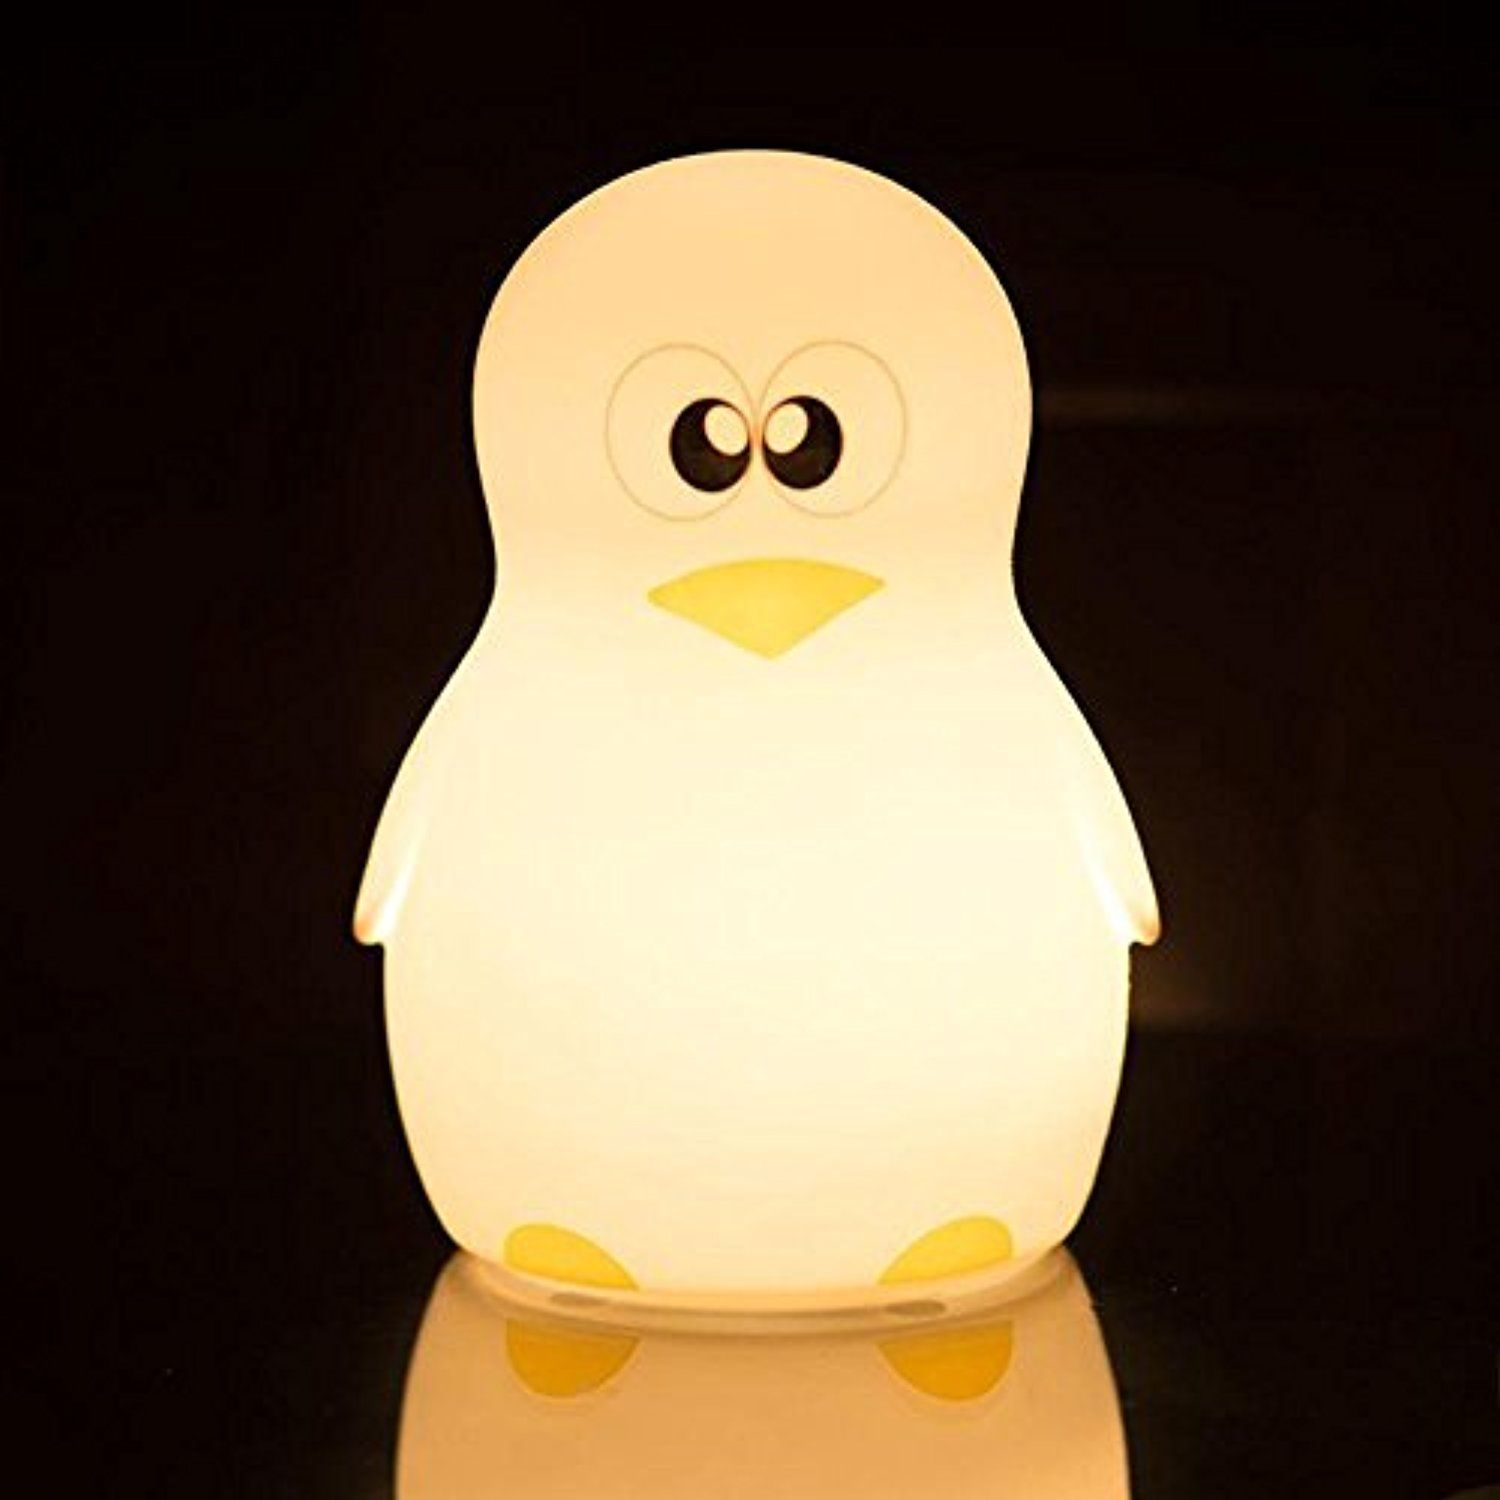 Niceeshop Tm Led Children Night Light Cute Penguin Silicone Night Lights Lamp For Kids Bedroom Nursery Bab Night Light Kids Best Night Light Night Light Lamp